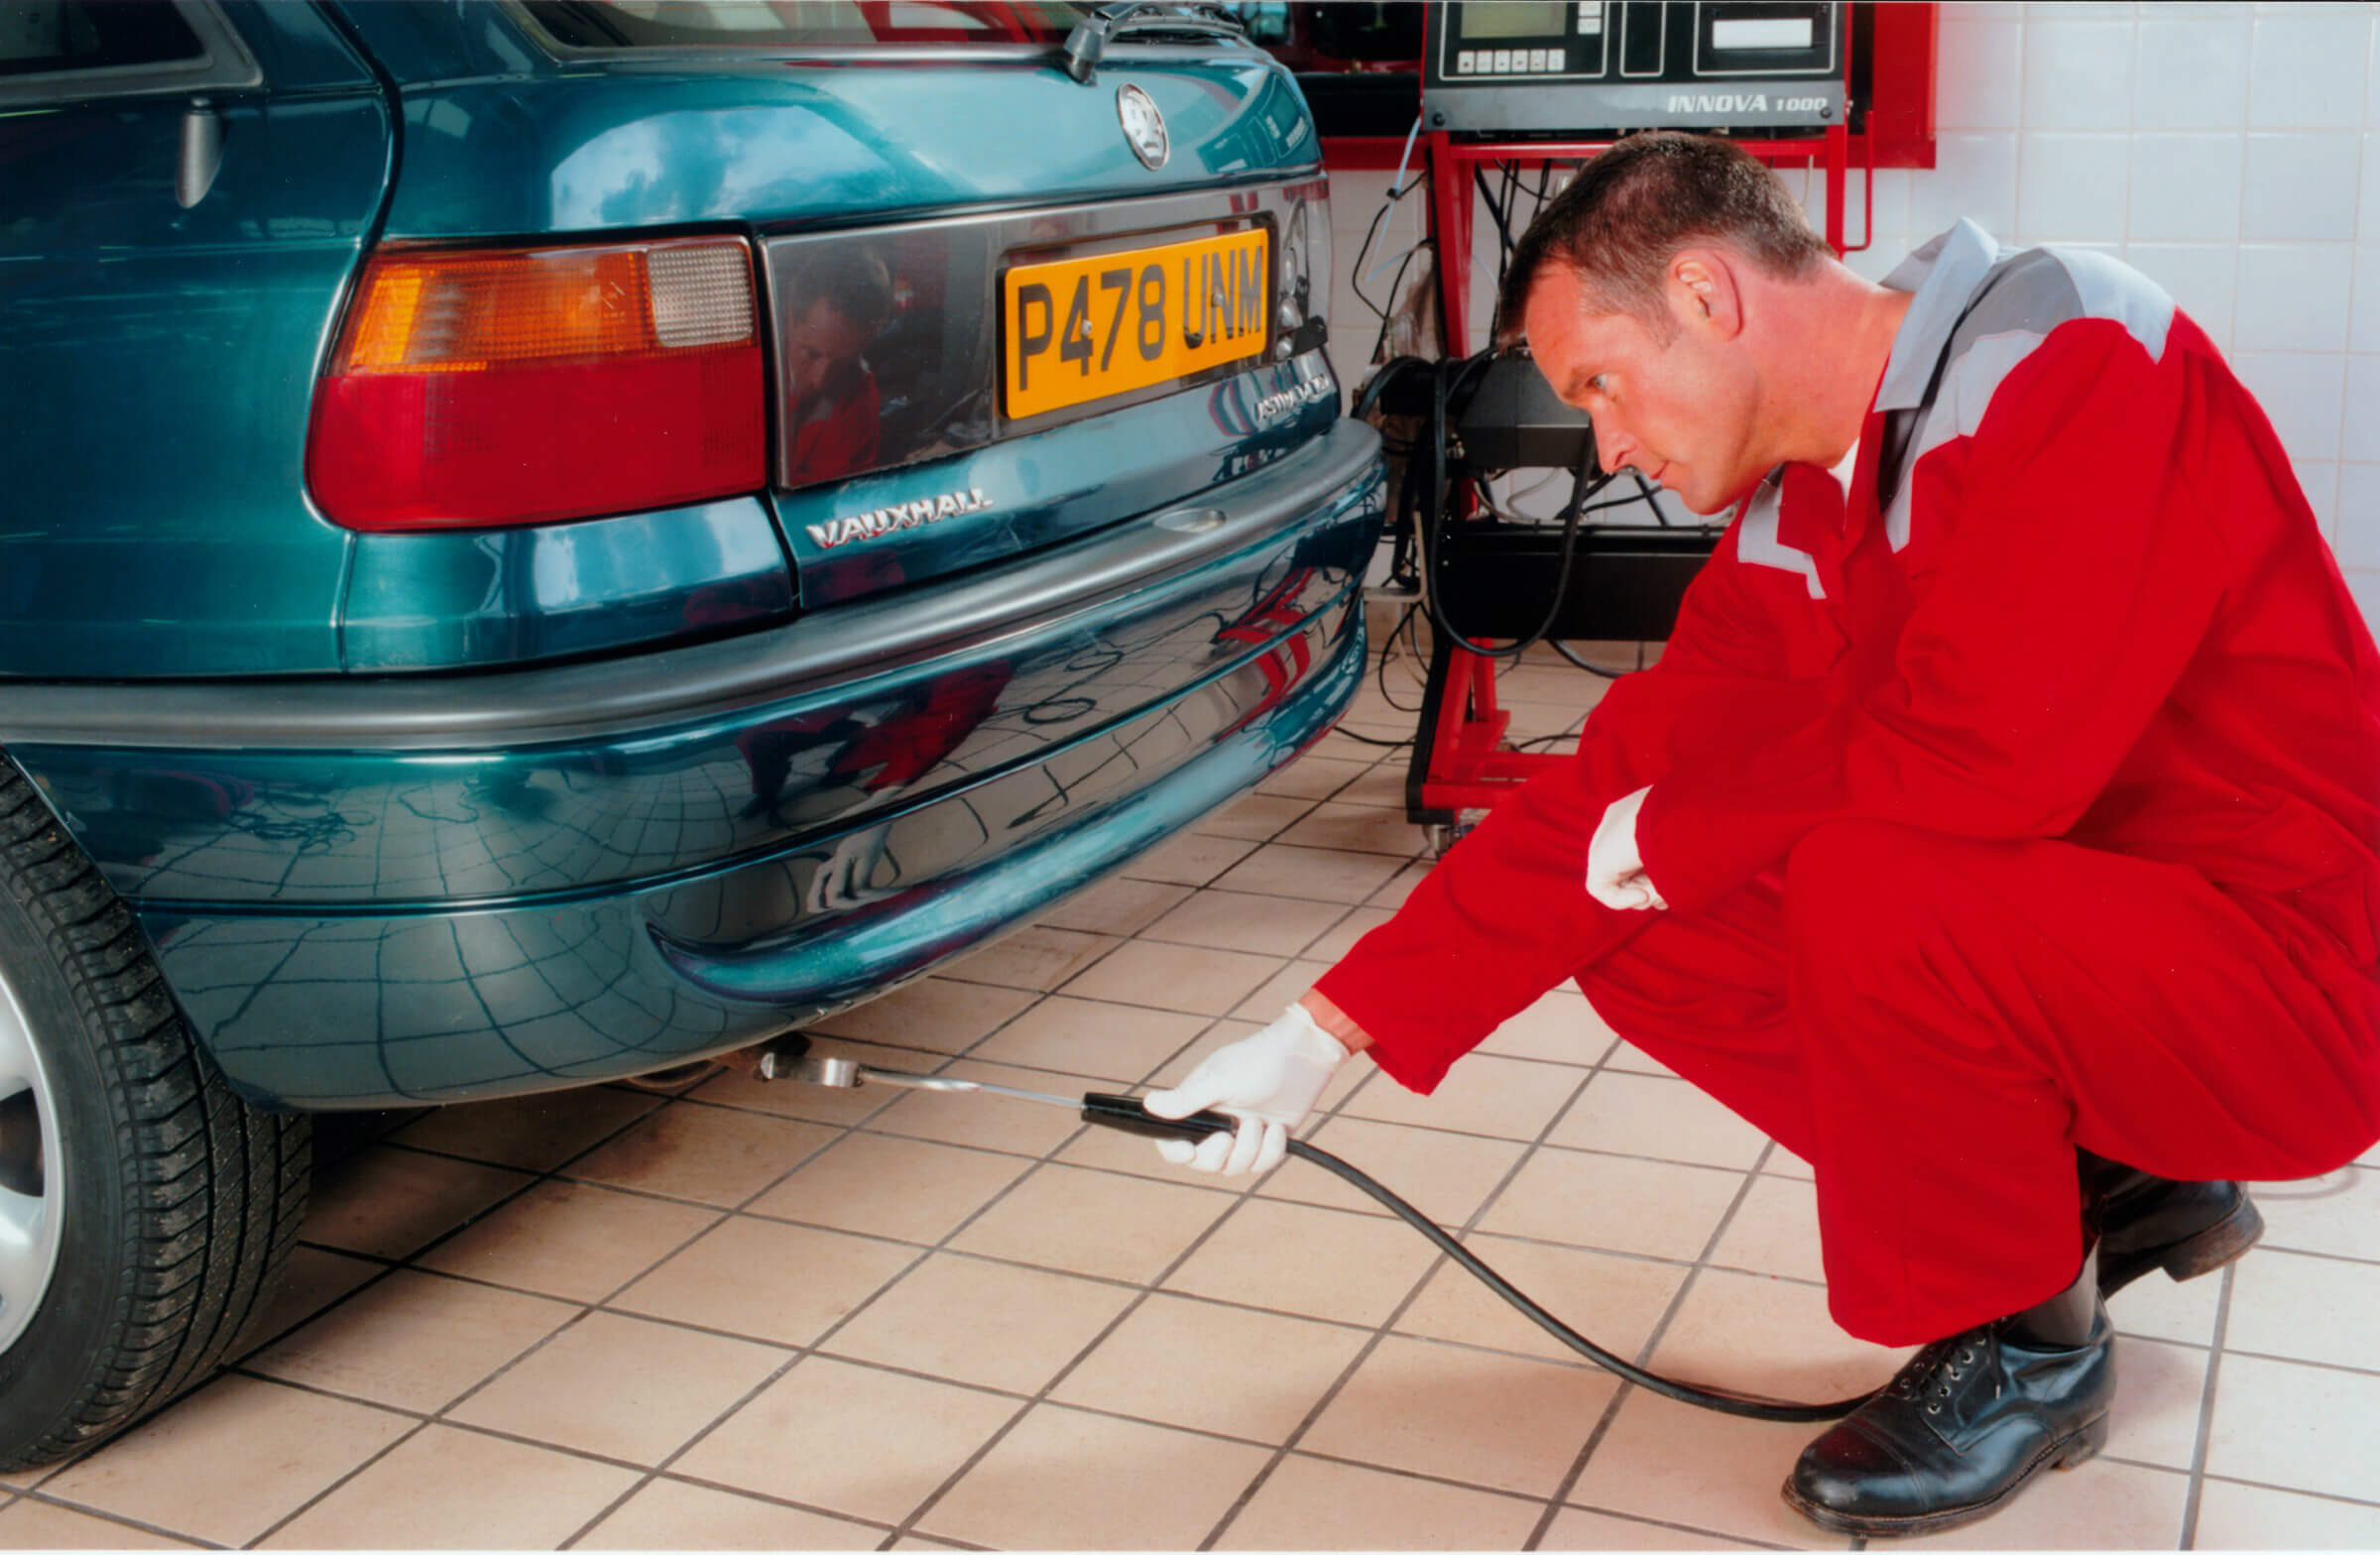 Catalytic converters: How long should they last and why do they cost so much?